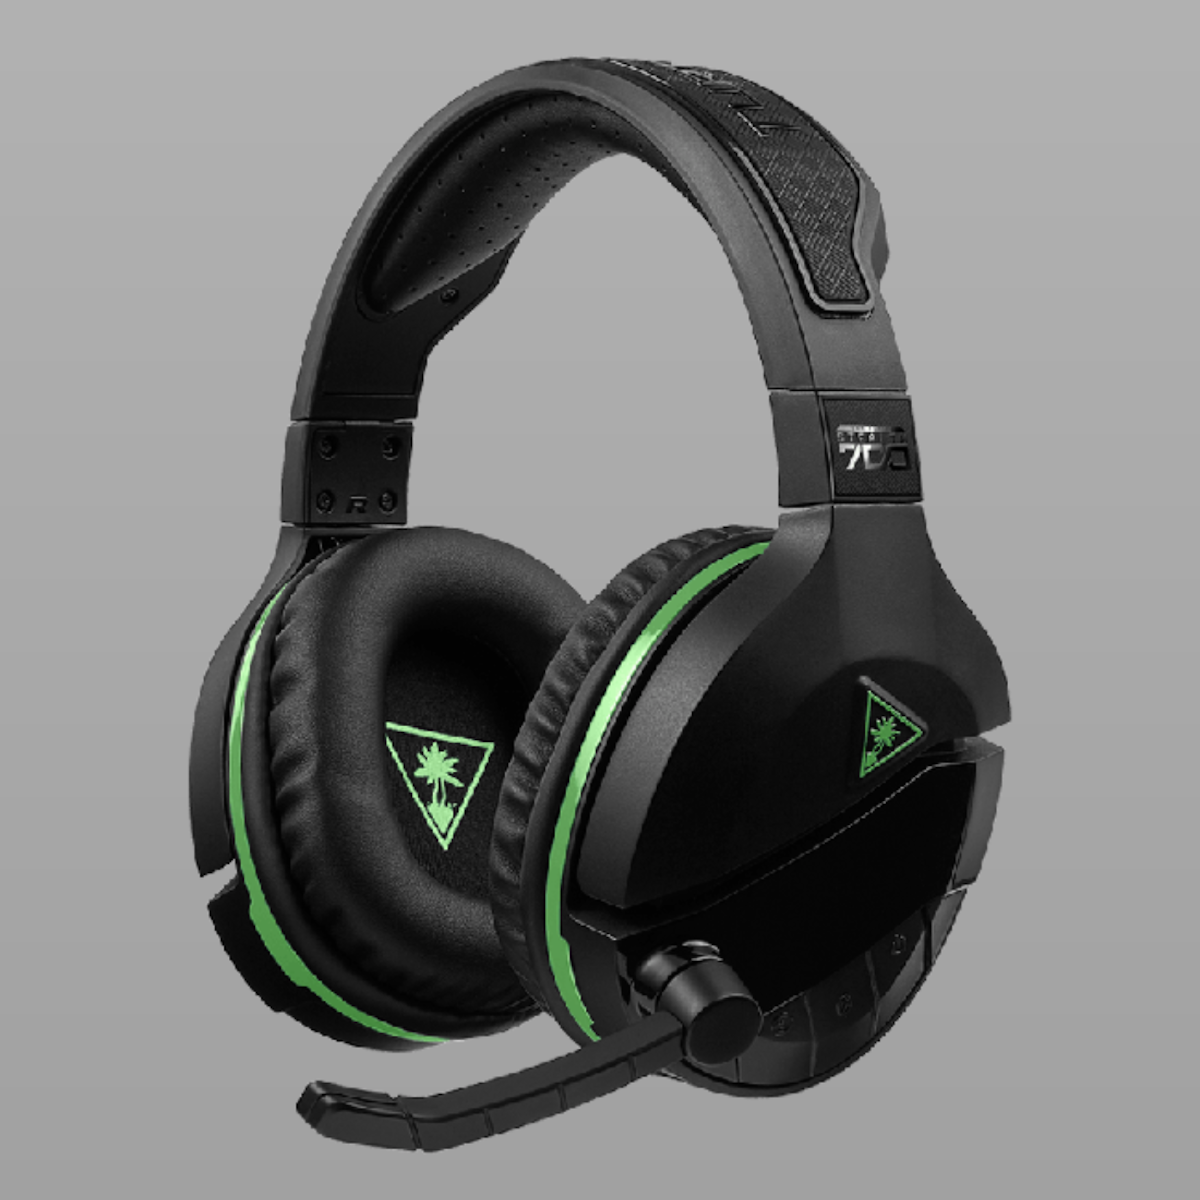 Turtle Beach Stealth 600 and Stealth 700 headsets connect